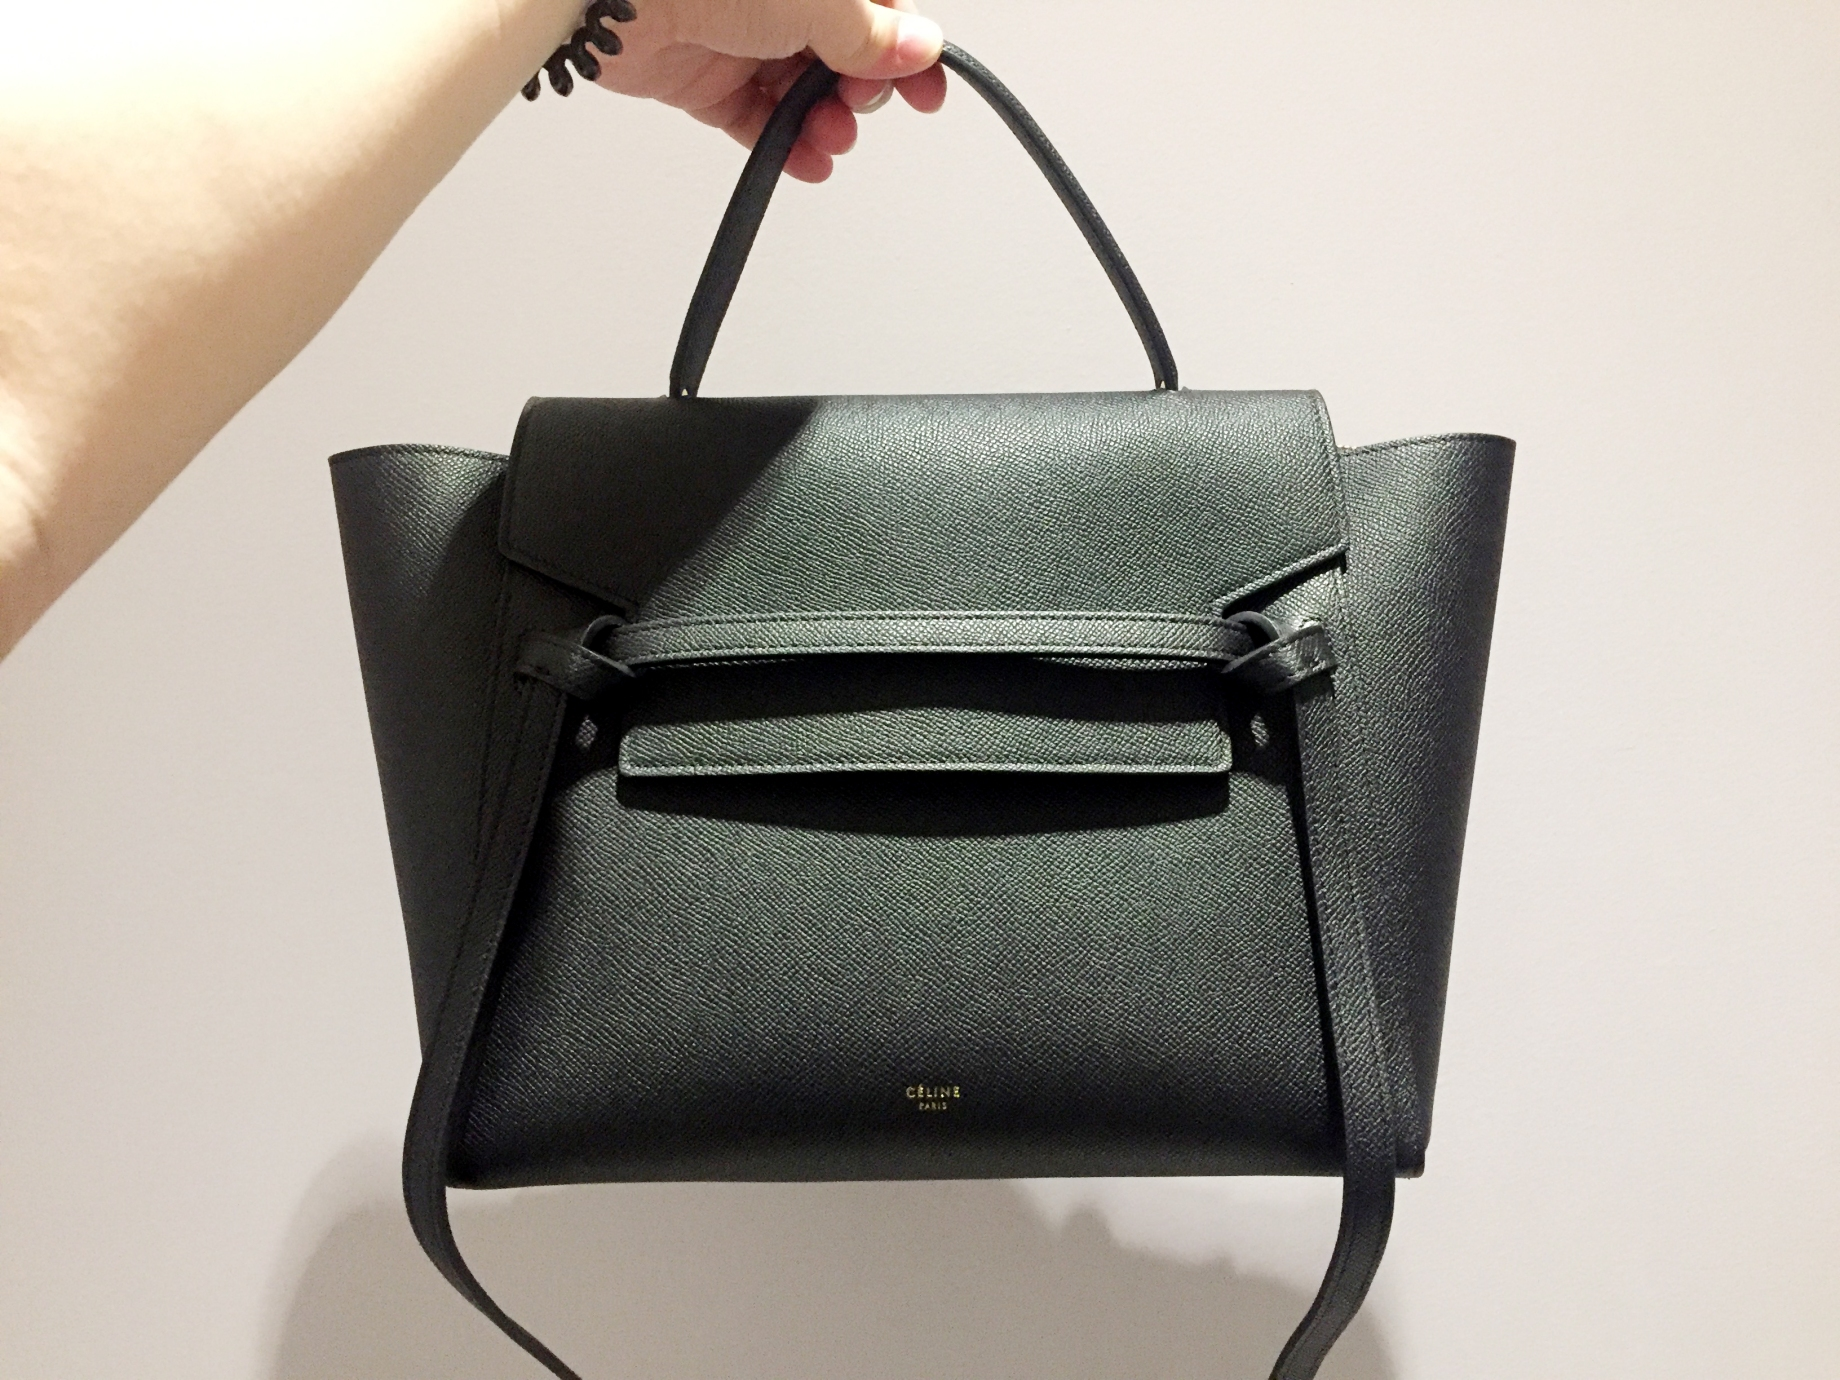 60939ae919 Céline Belt Bag Honest Review